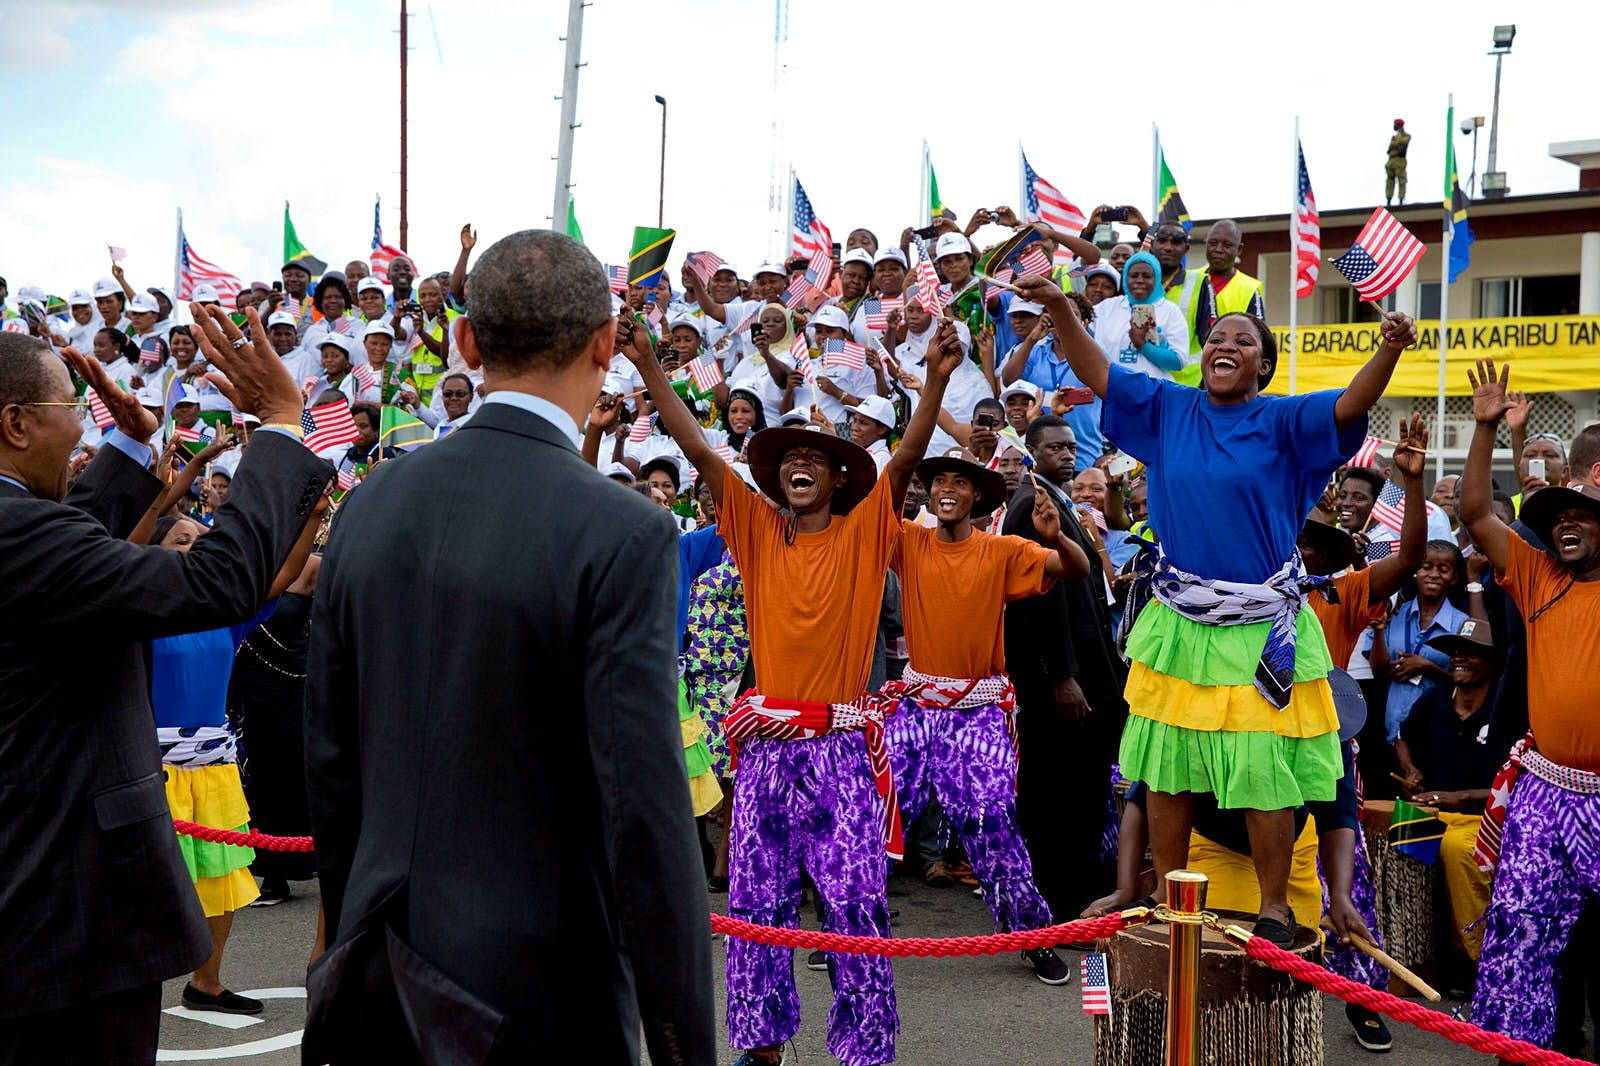 President Obama watching performers on the tarmac at Julius Nyerere International Airport in Dar es Salaam, Tanzania, July 2, 2013©Pete Souza /Official White House Photo